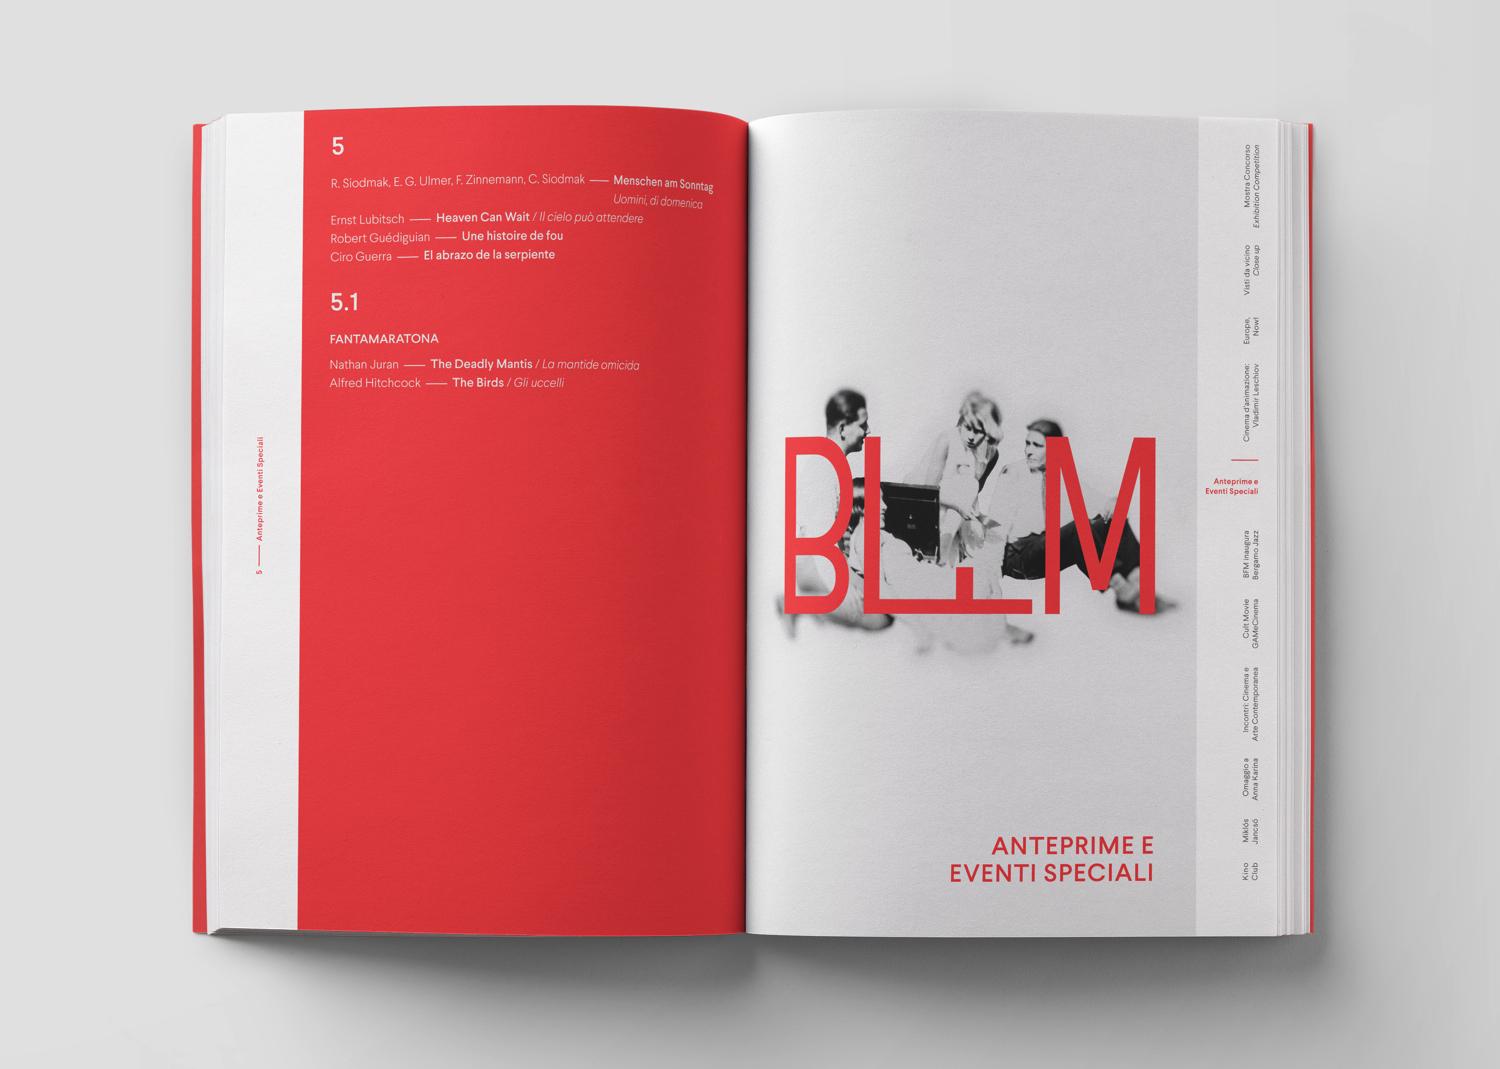 bfm_catalogue_09